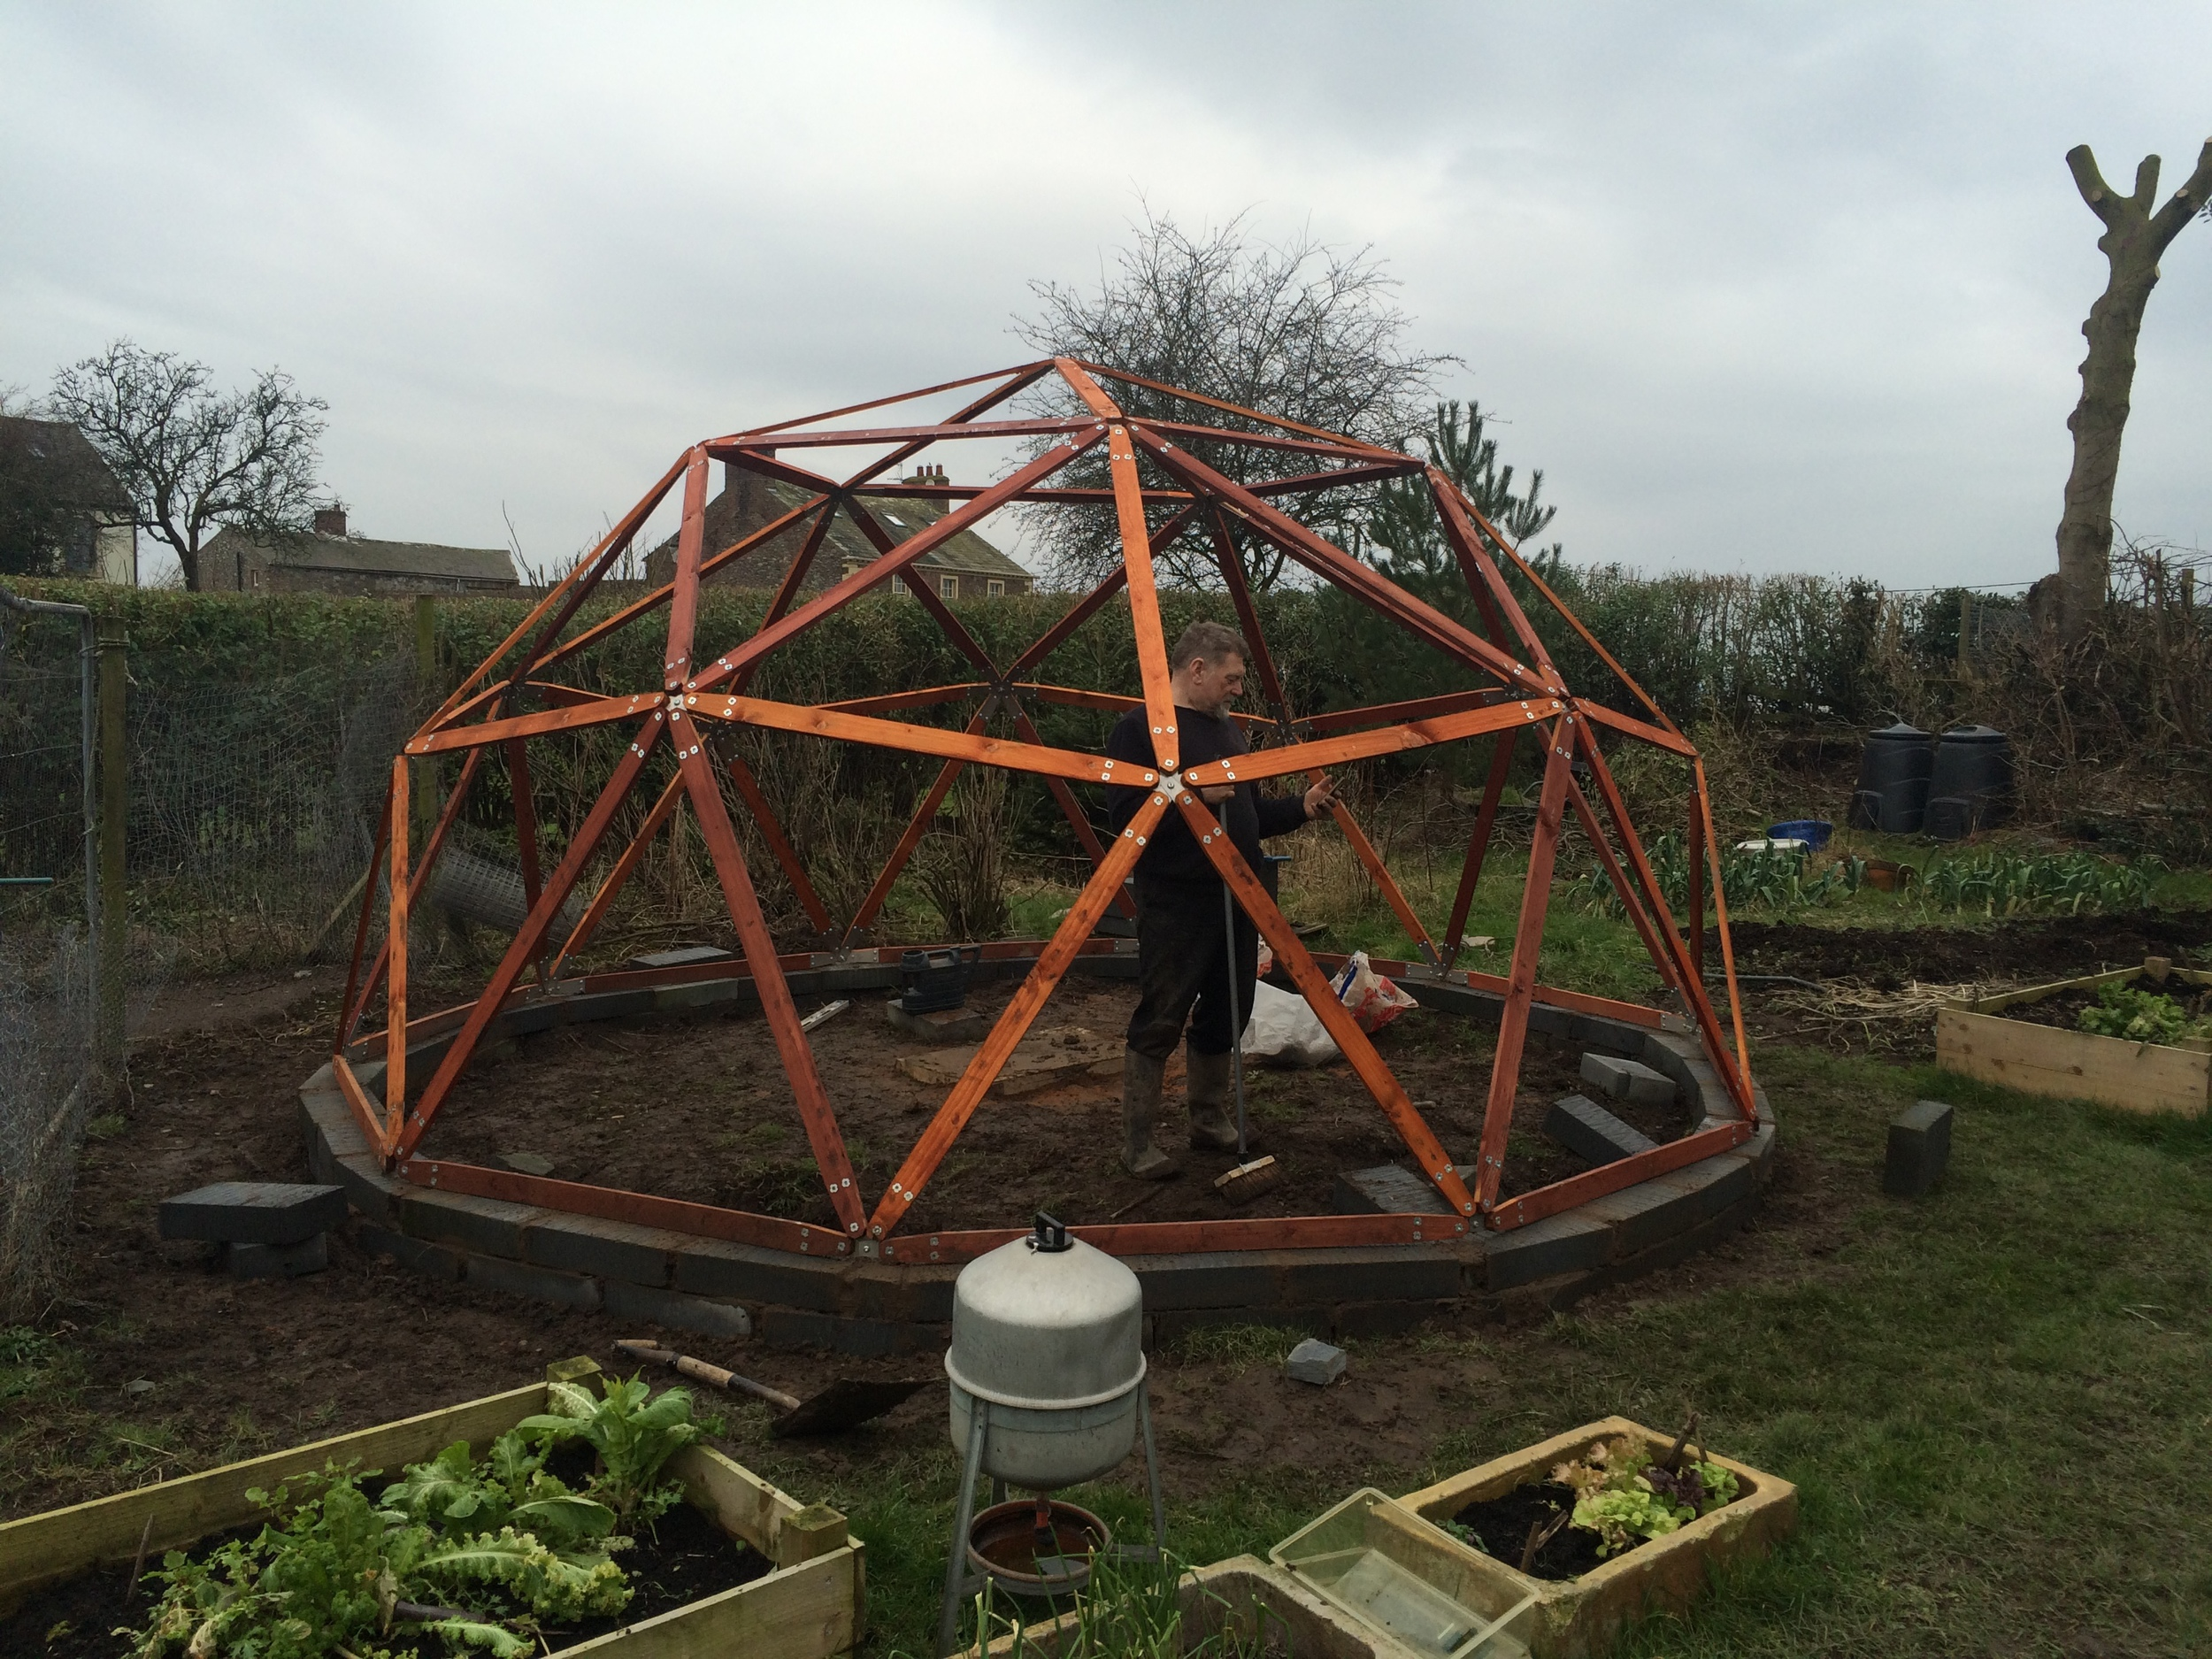 He had built the wall the day before and errected the dome frame within 2 hours.